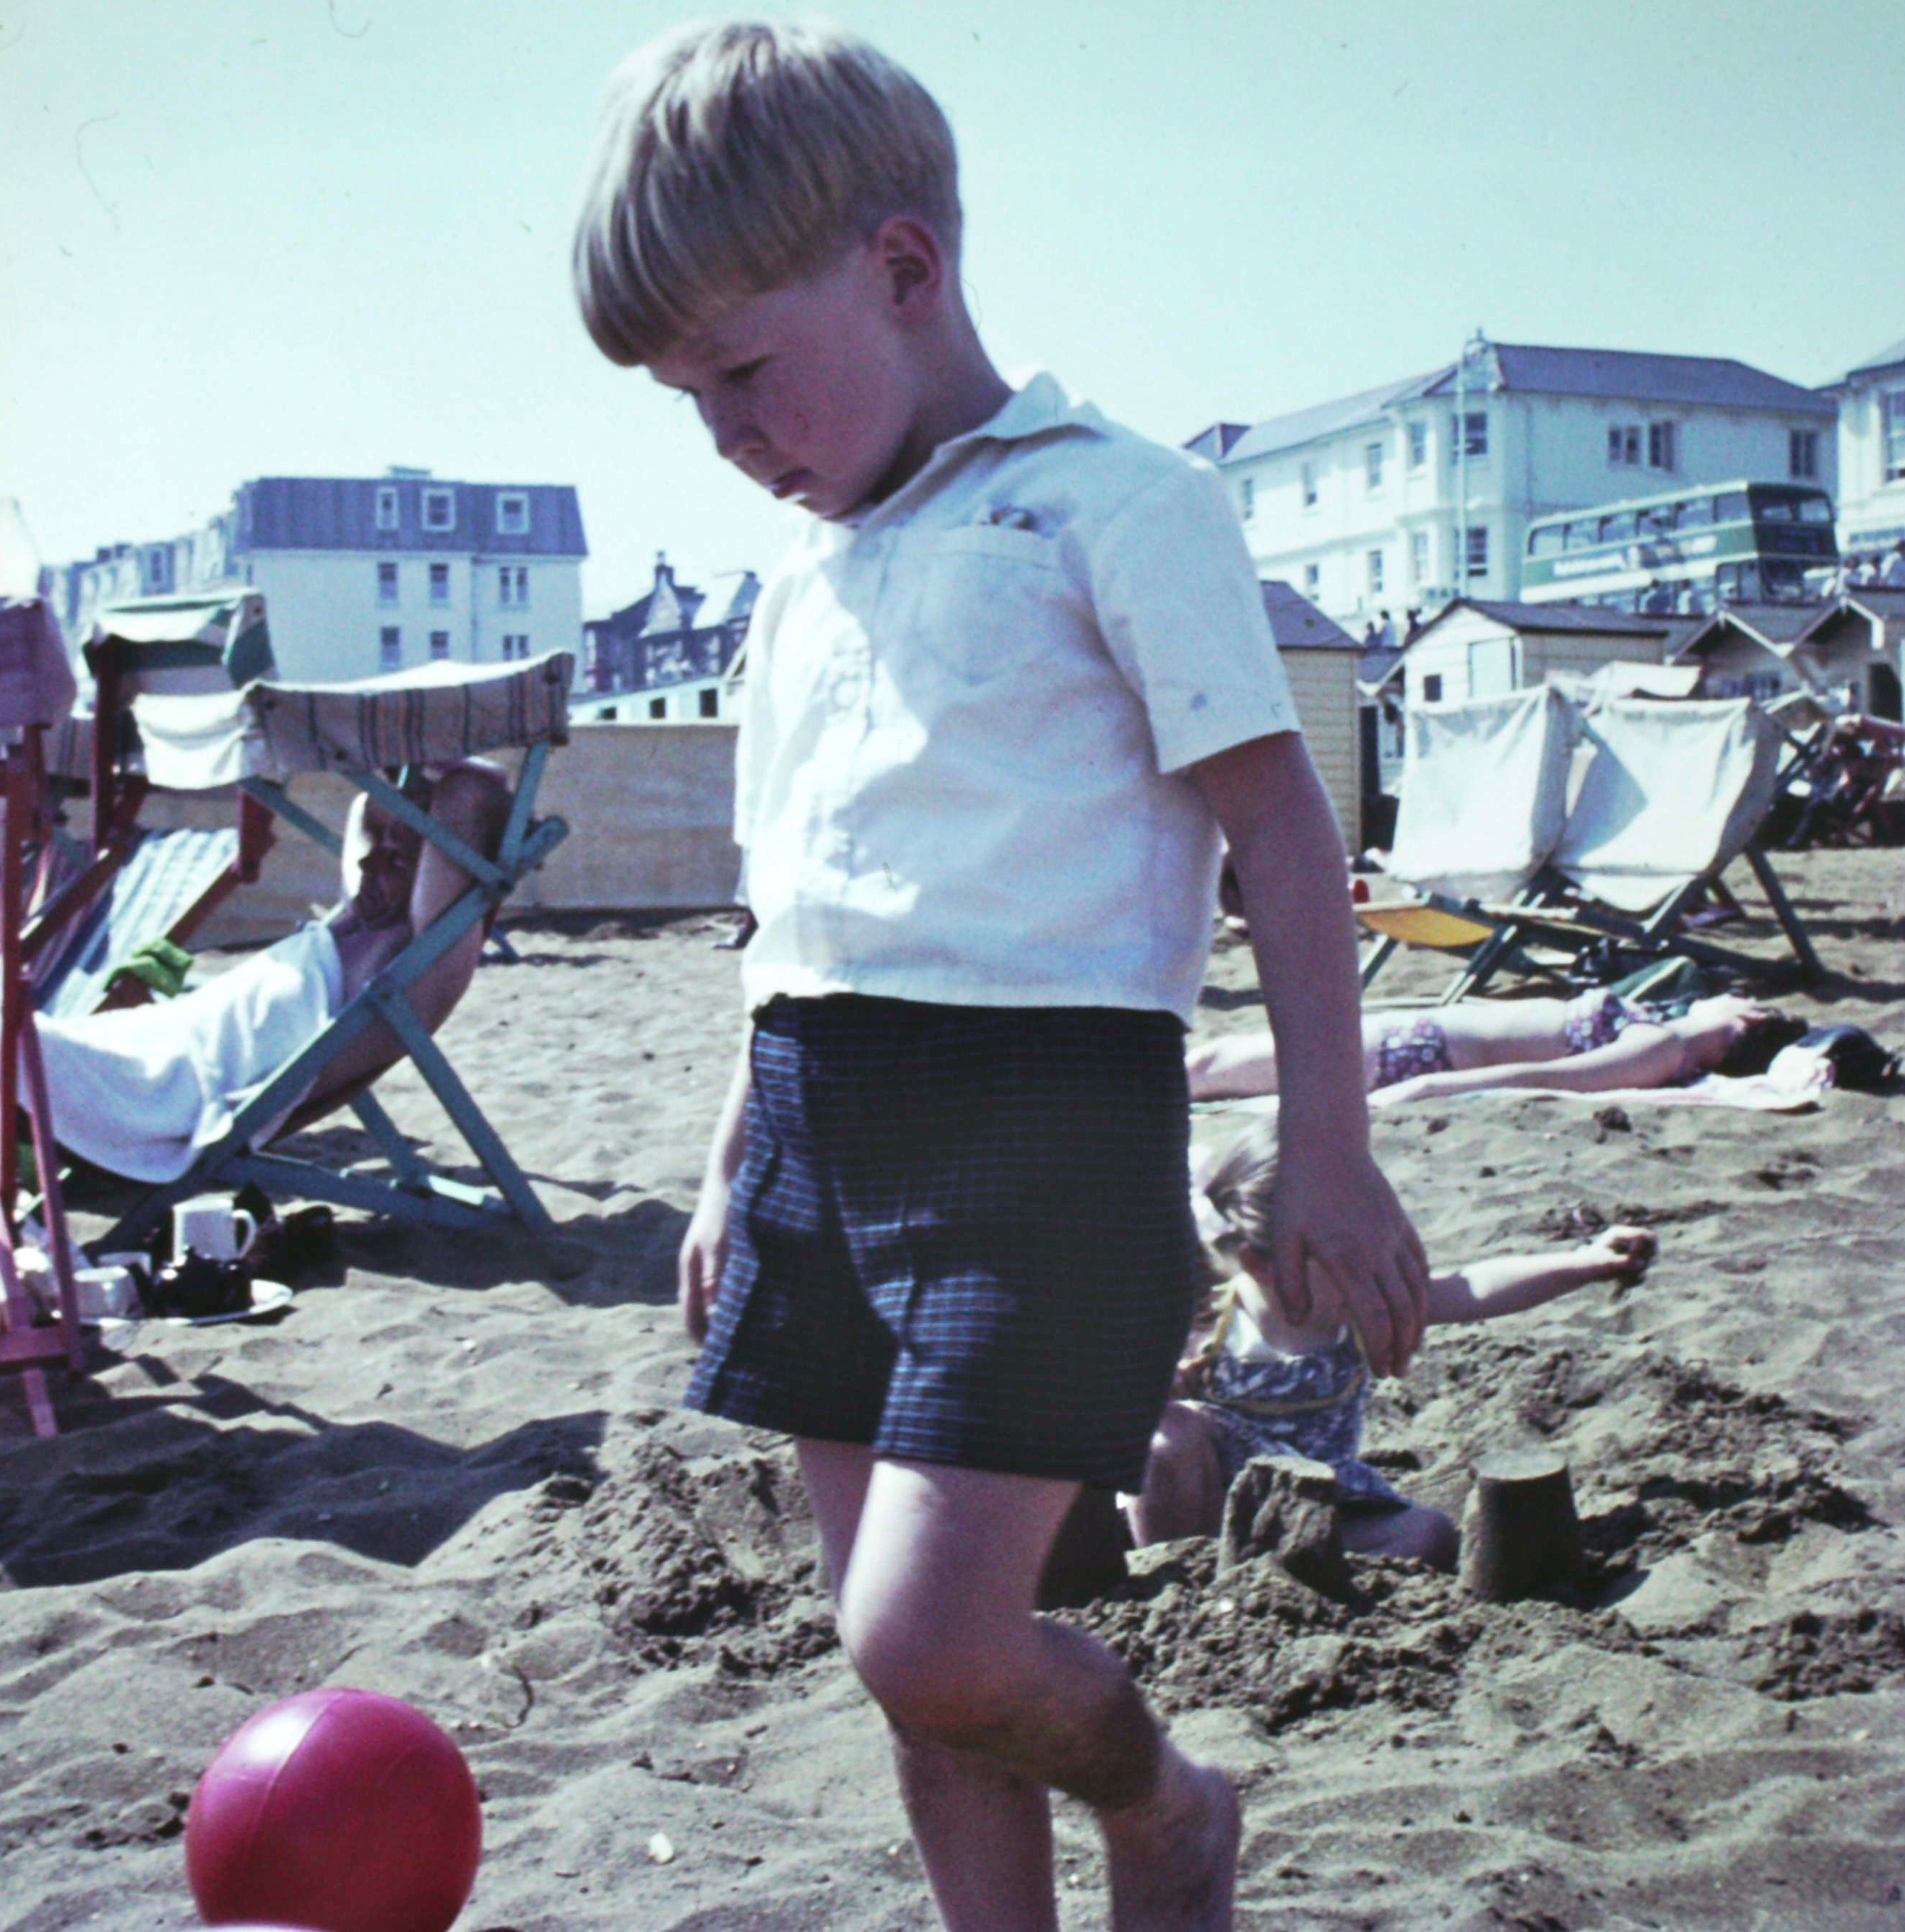 Photograph Vince, aged around six in shorts and white shirt on a sandy beach kicking a football